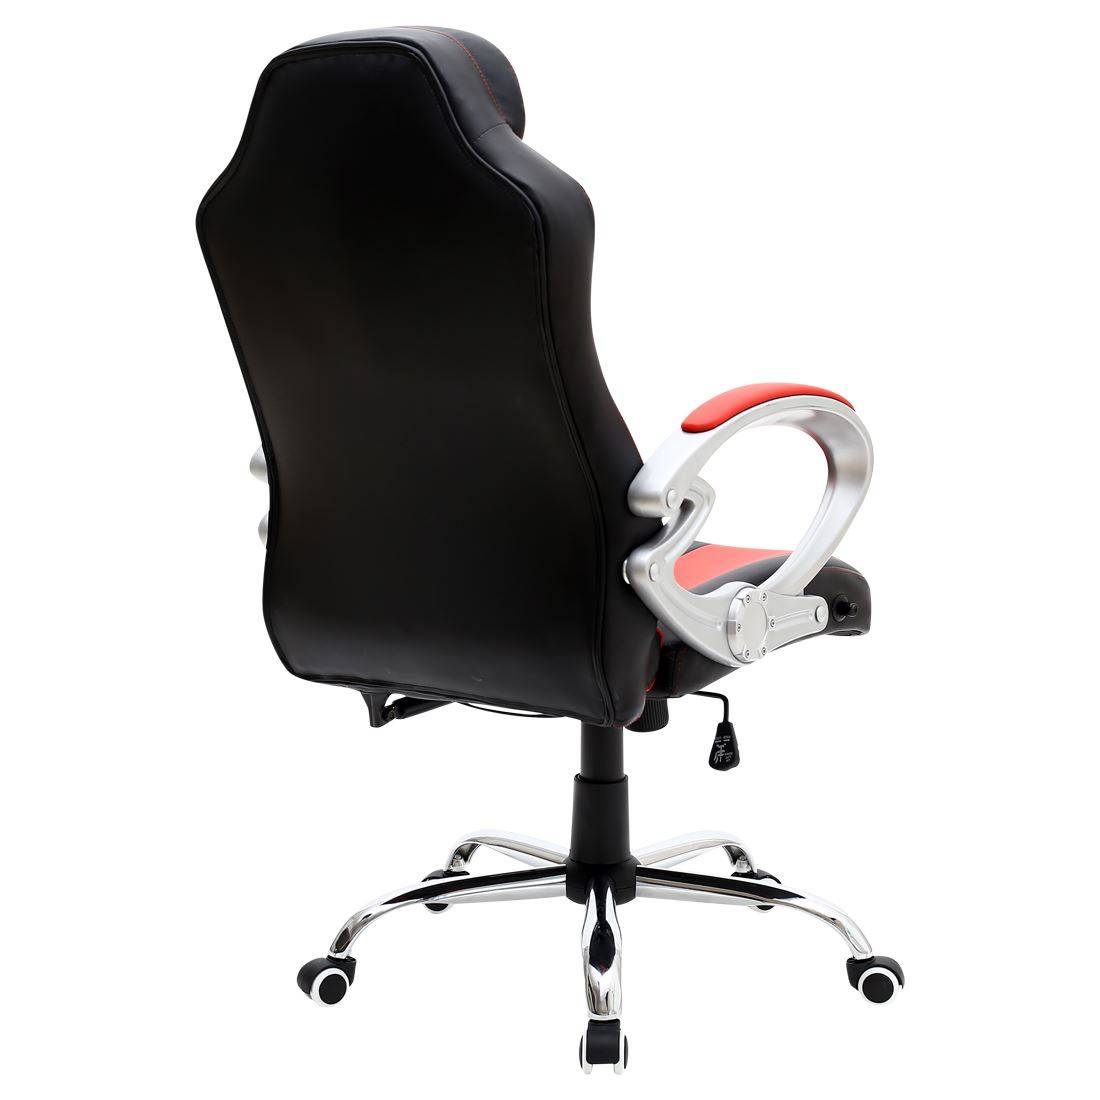 swivel chair for car luxury bean bag chairs monaco black red gaming sports seat home office